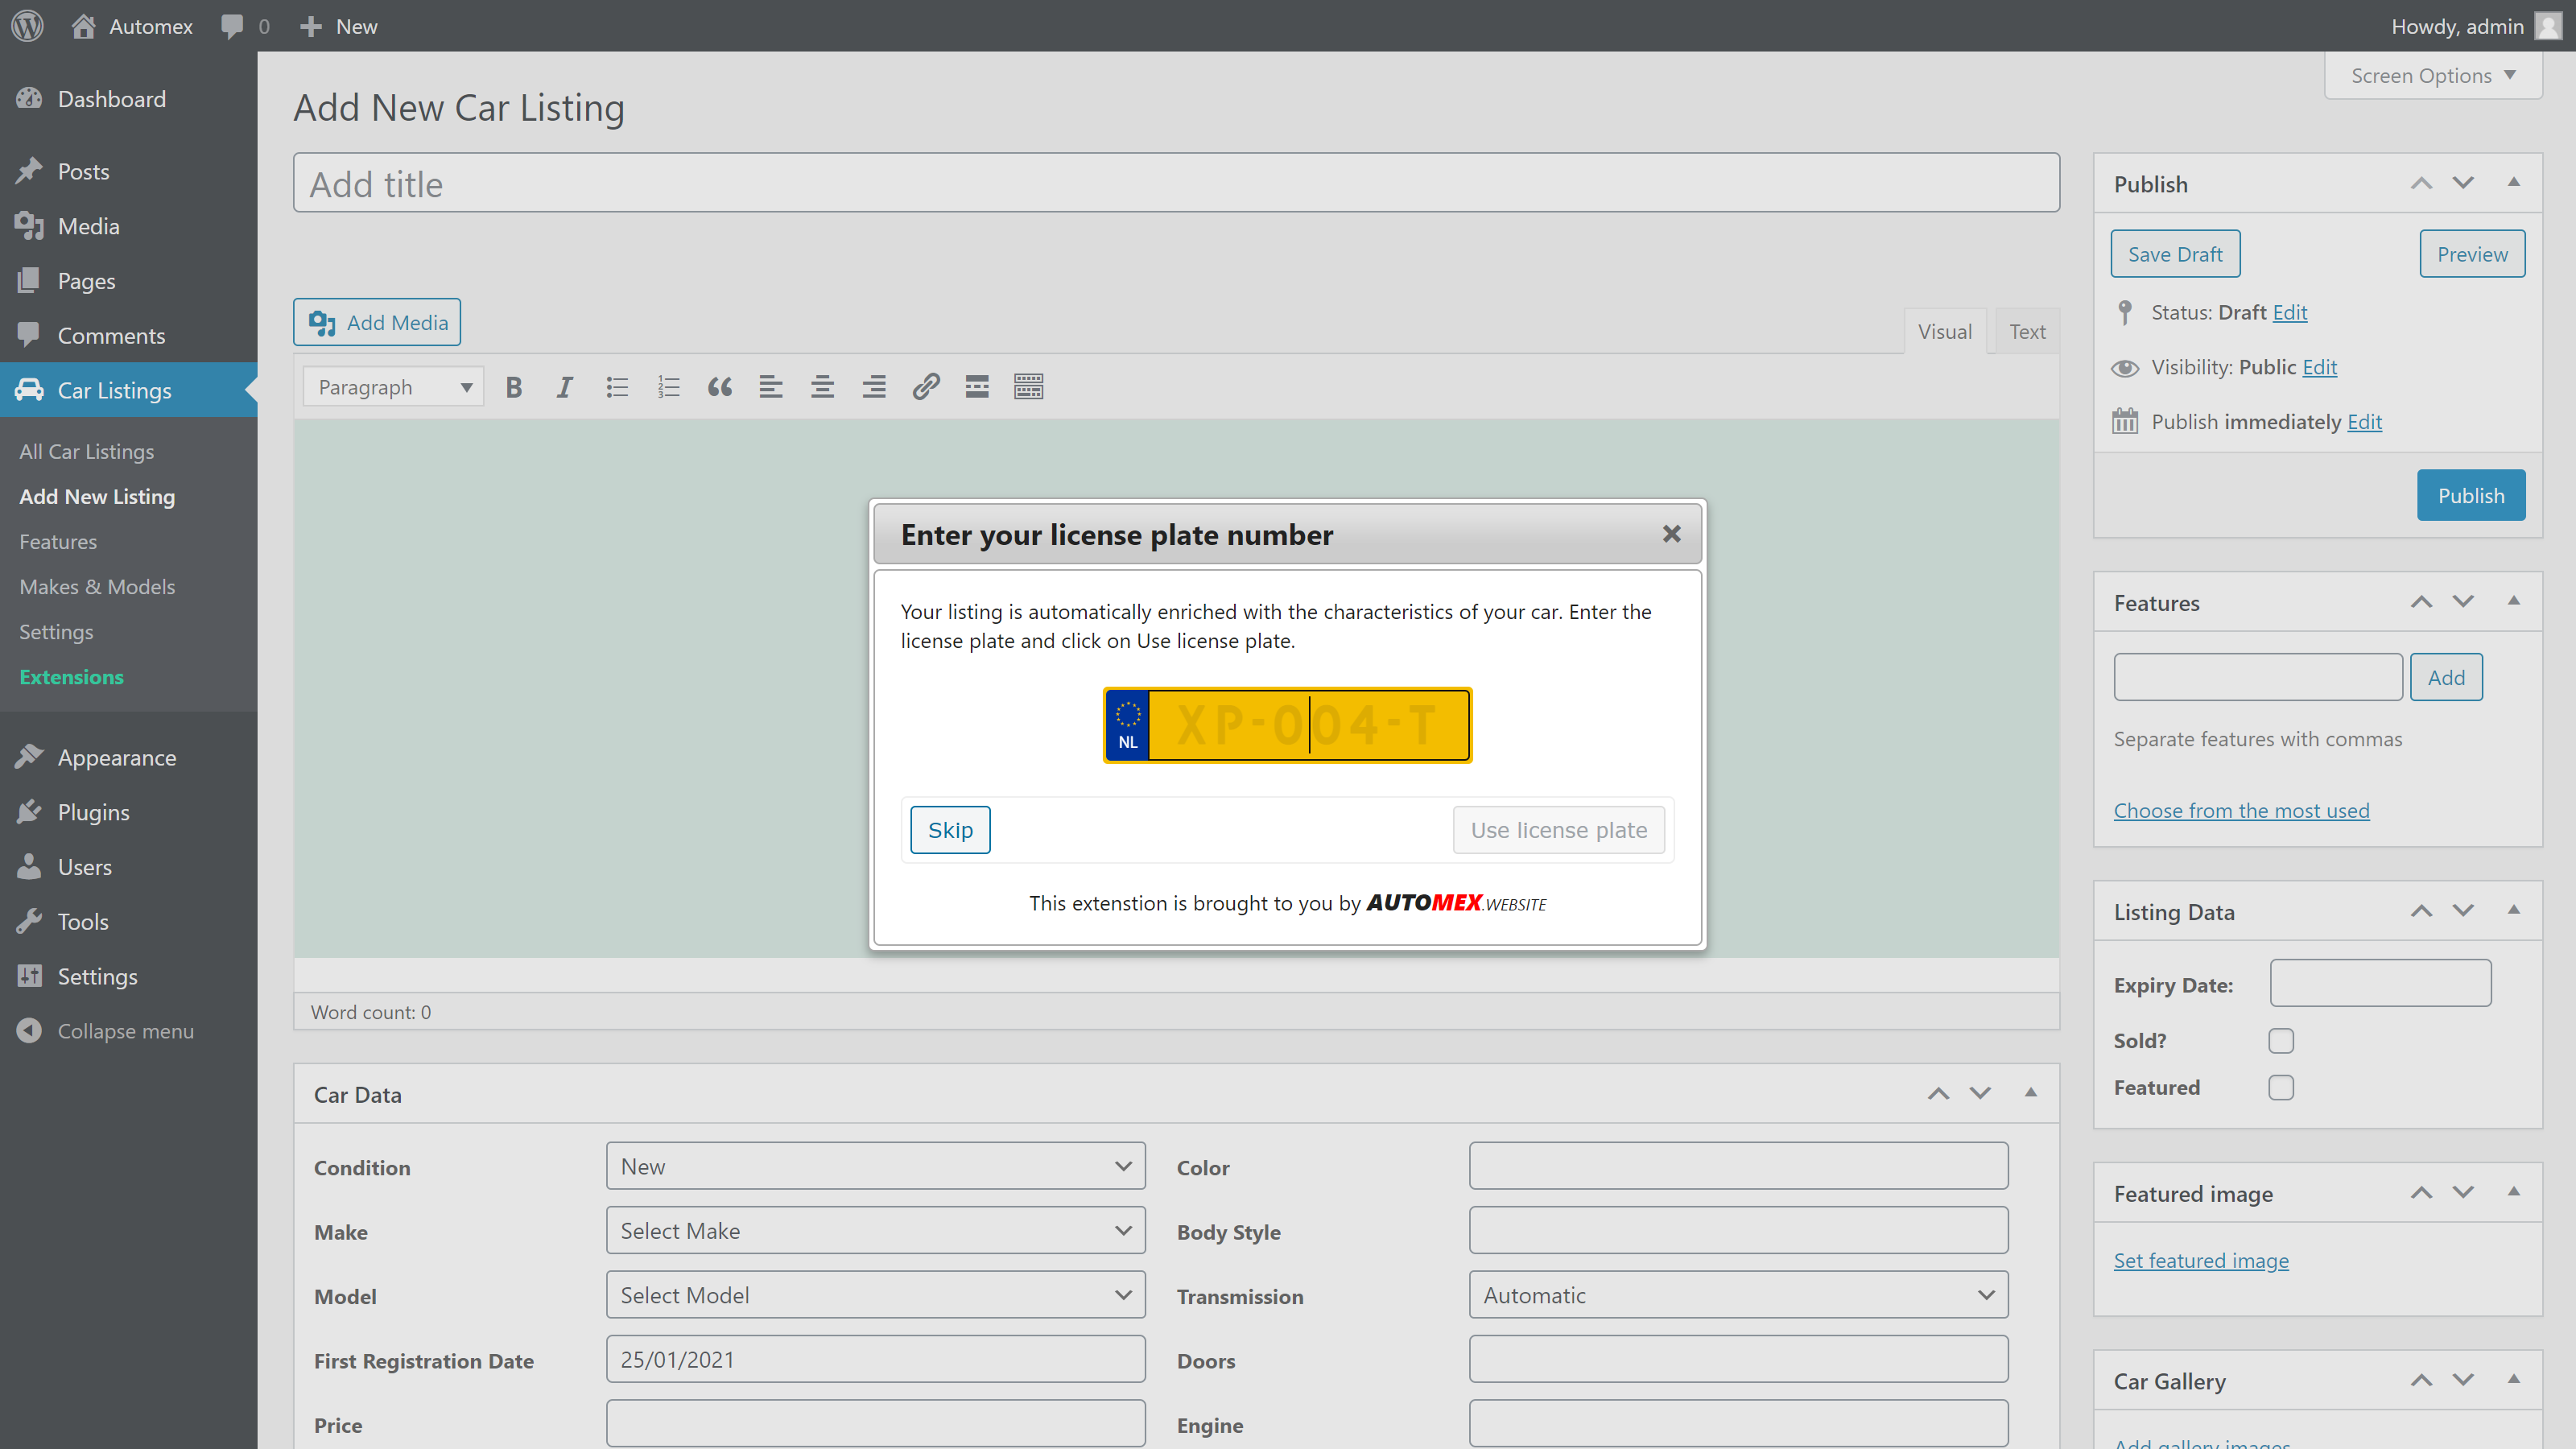 Admin Area (Add New Listing -> Enter your license plate number dialog).